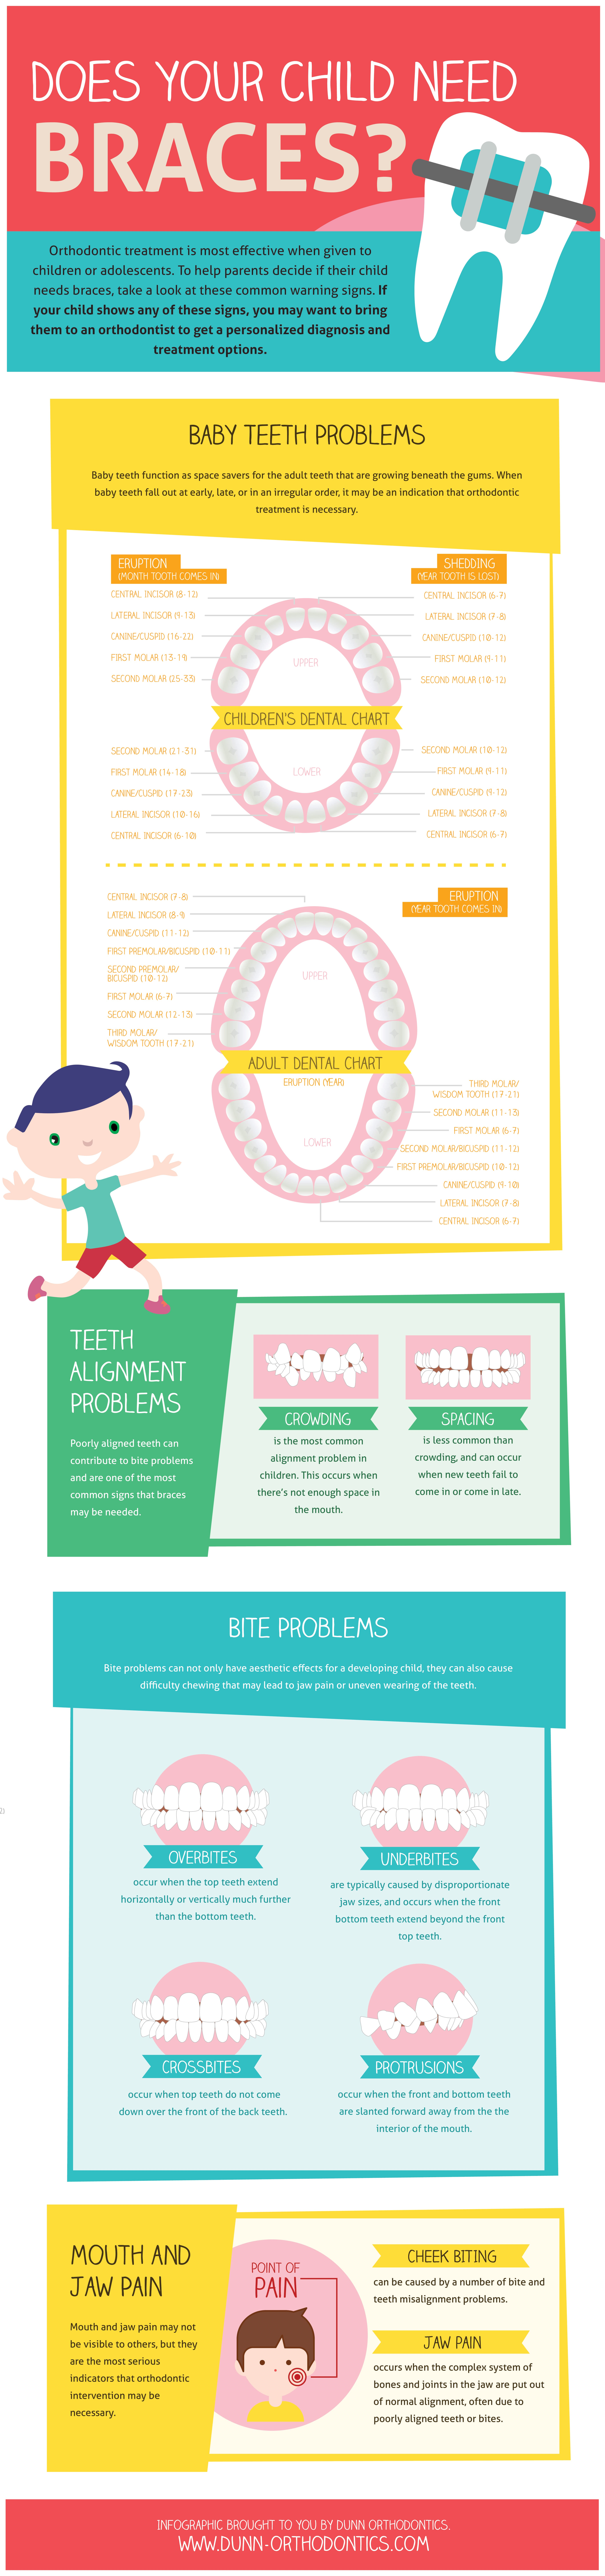 Does Your Child Need Braces?